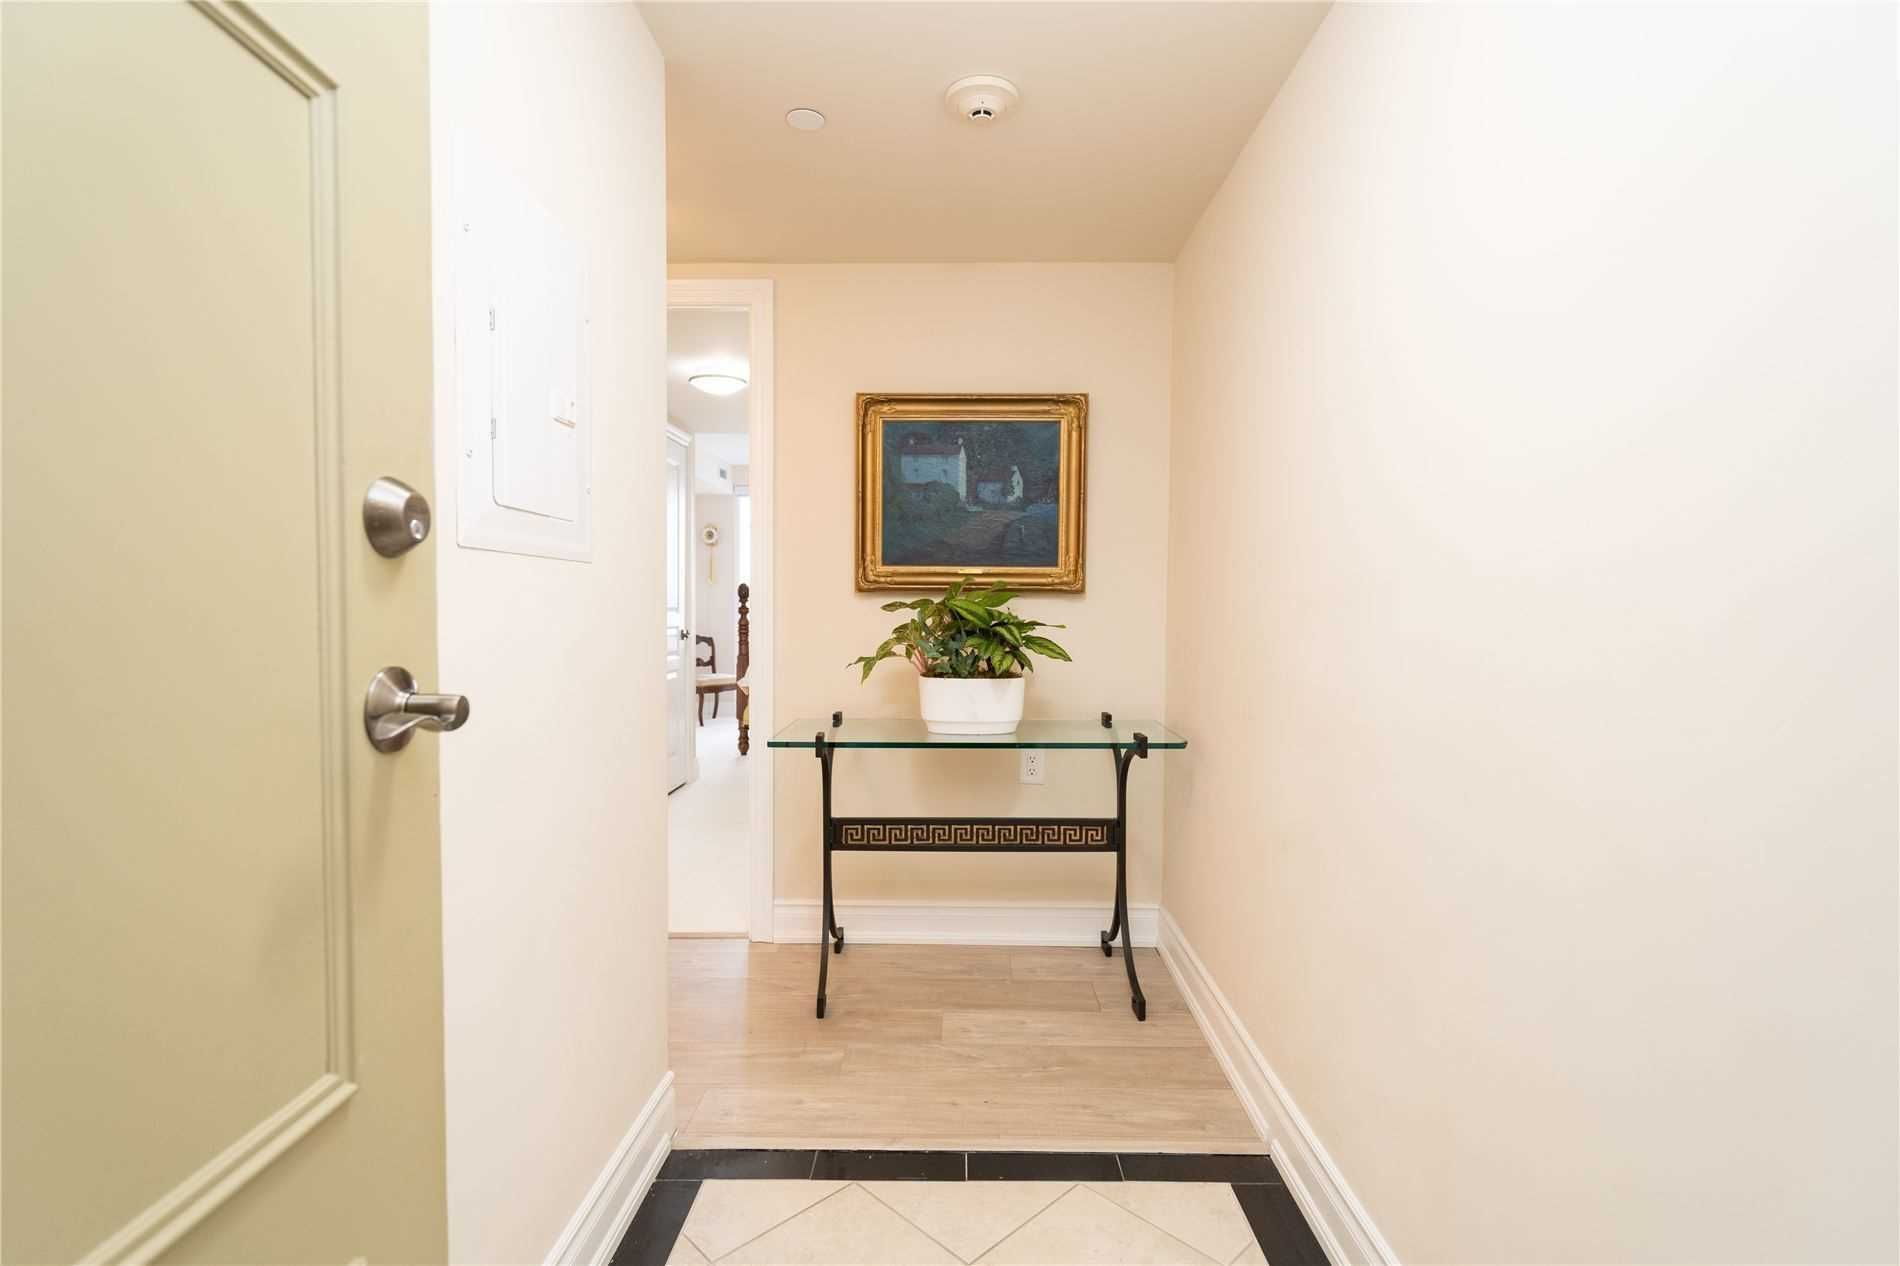 3 Marine Parade Dr, unit 1006 for sale in Toronto - image #2